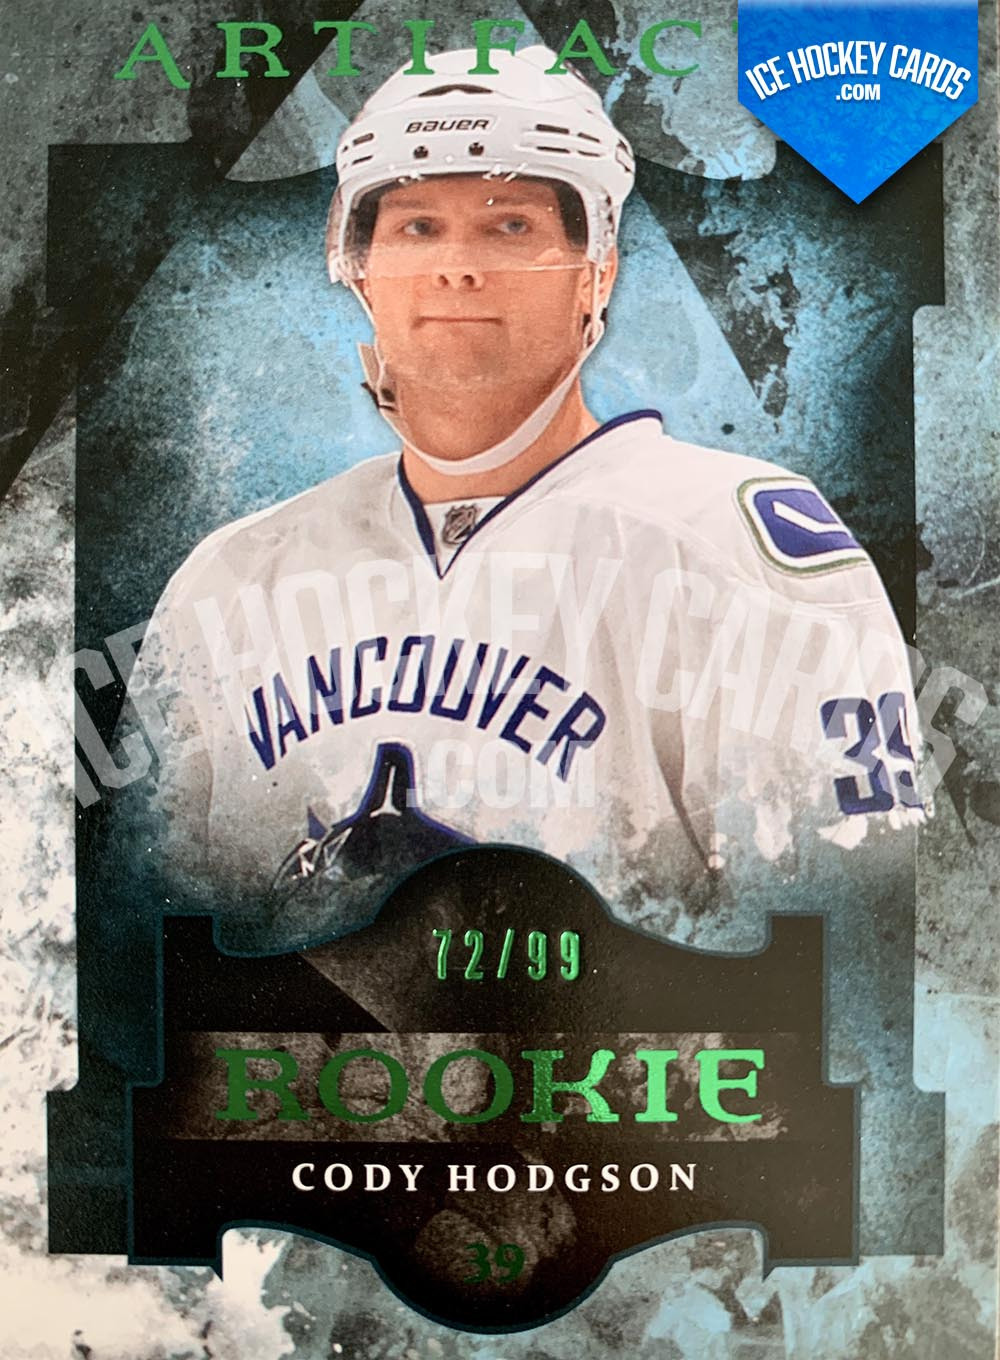 Upper Deck - Artifacts 2011-12 - Cody Hodgson Green Rookie Card # to 99